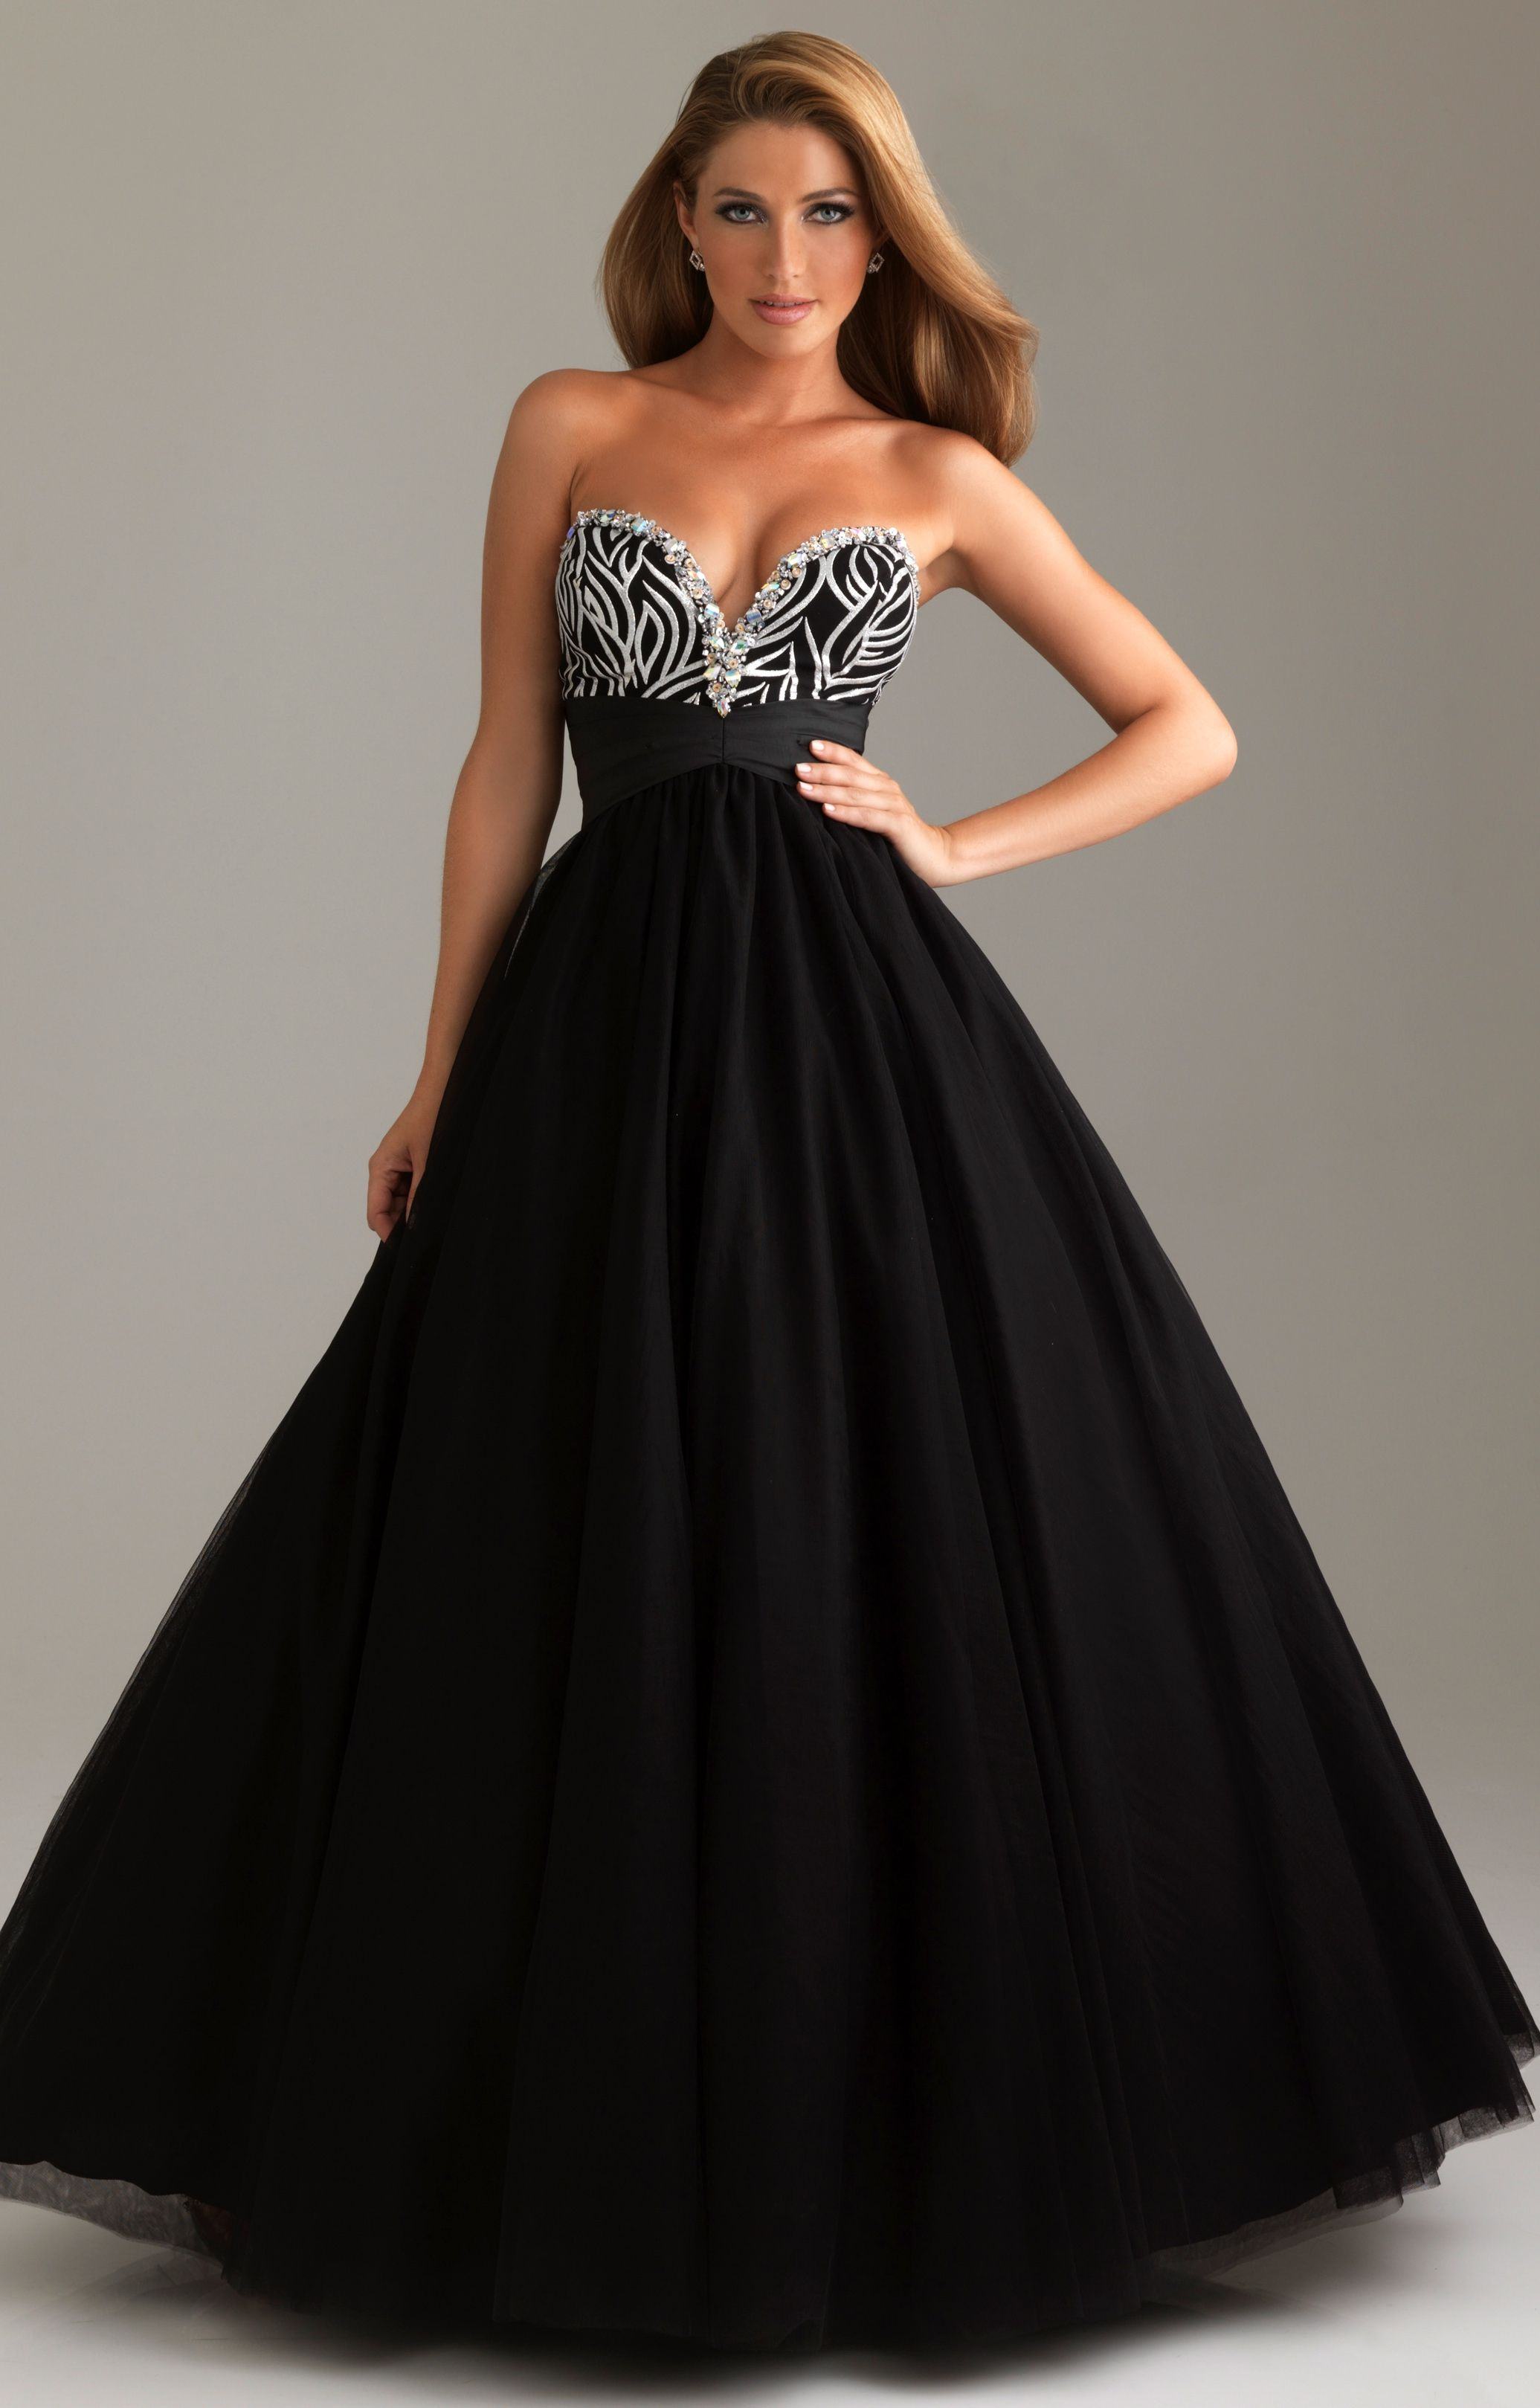 Black Ball Gown If I Had The Body Prom Dresses Black Prom